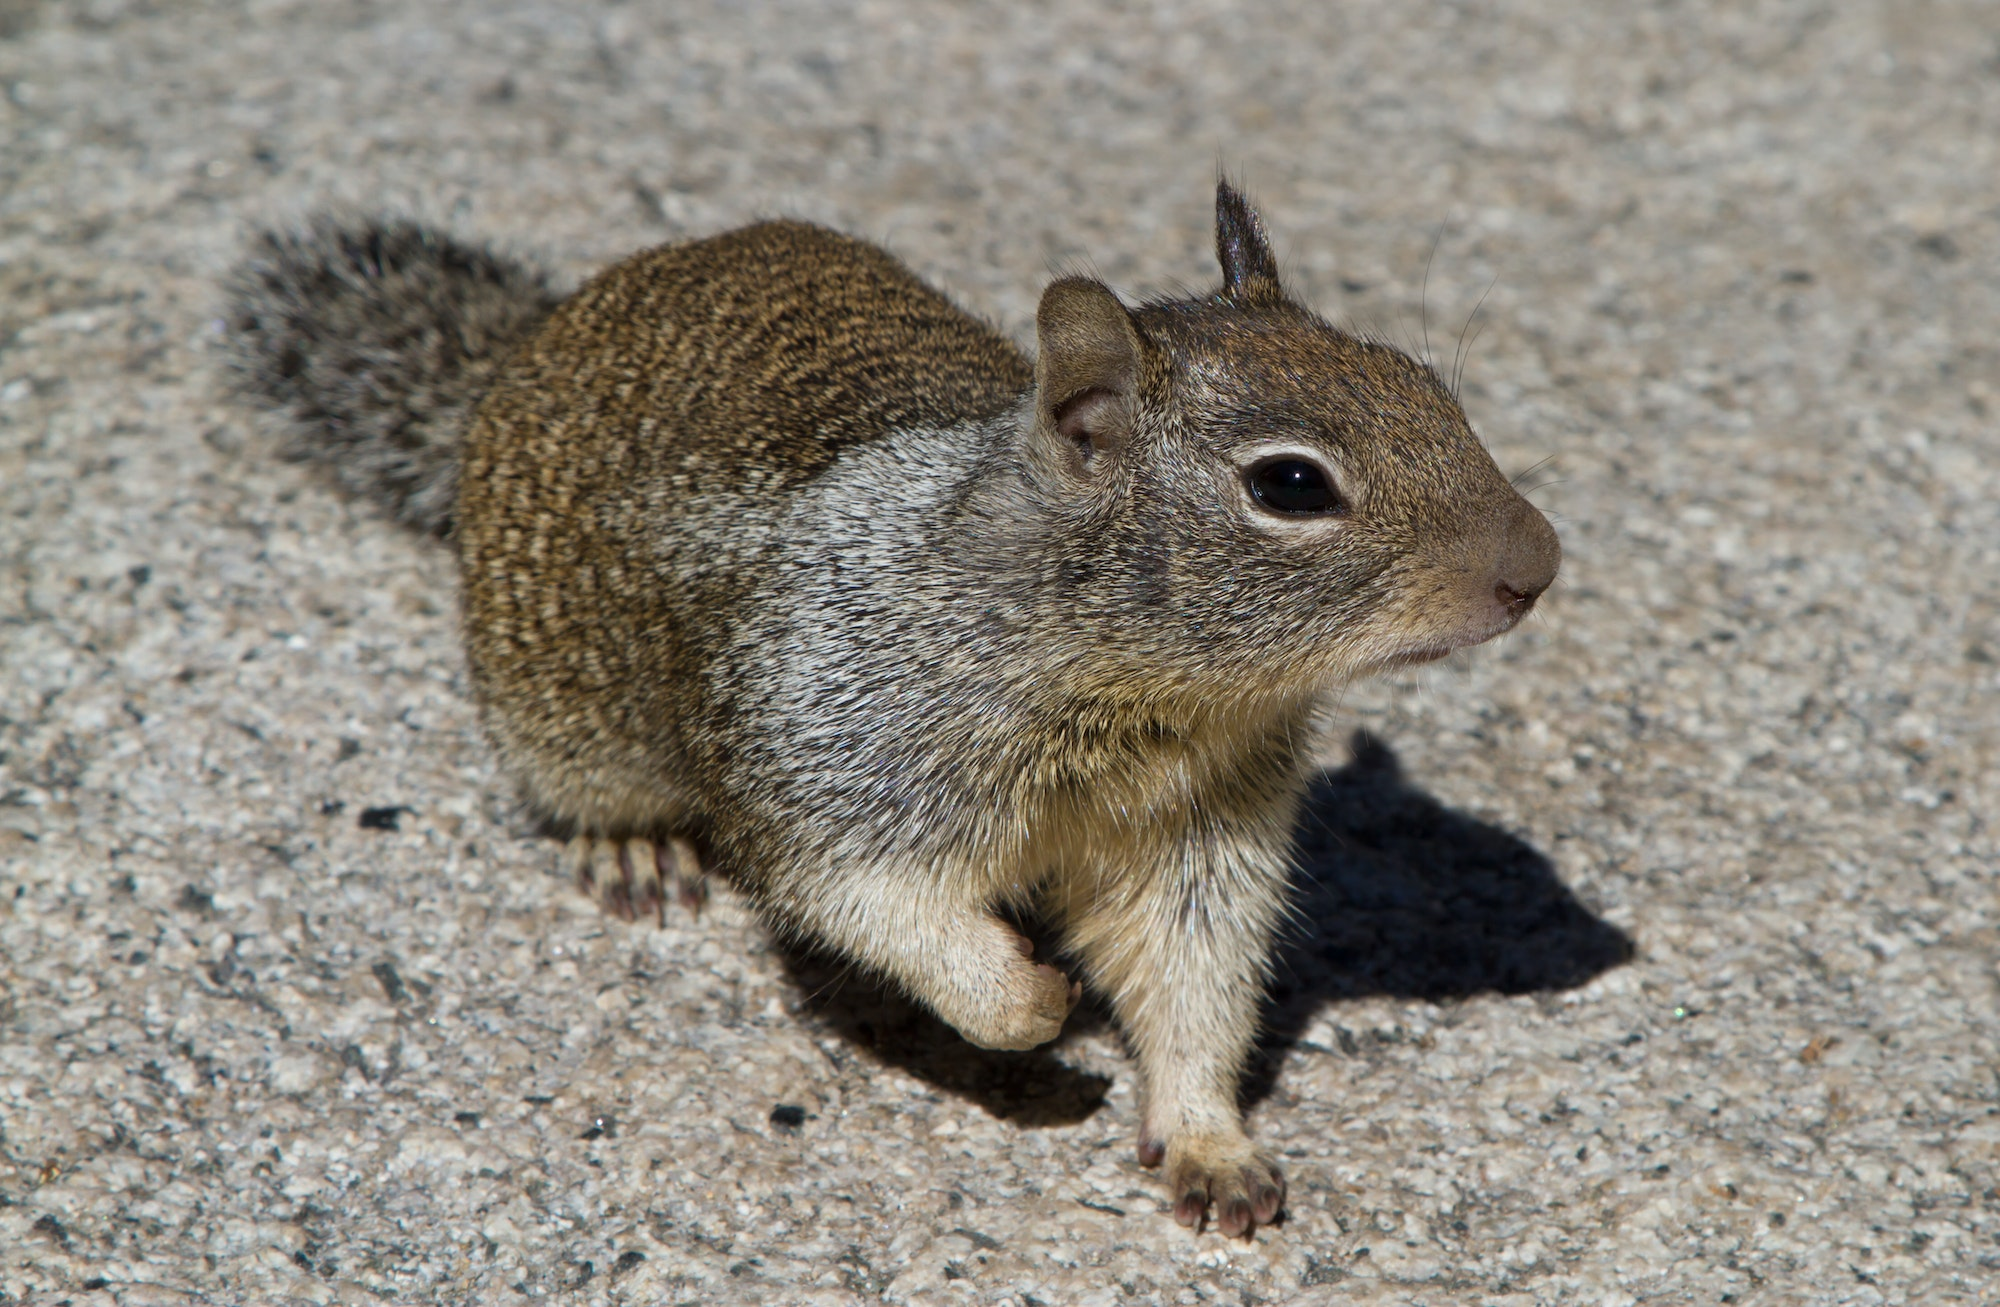 Front view of a California ground squirrel, which has a mottled brown and light brown coat of fur on its body. It has a bushy grey tail (but not as bushy as a tree squirrel).